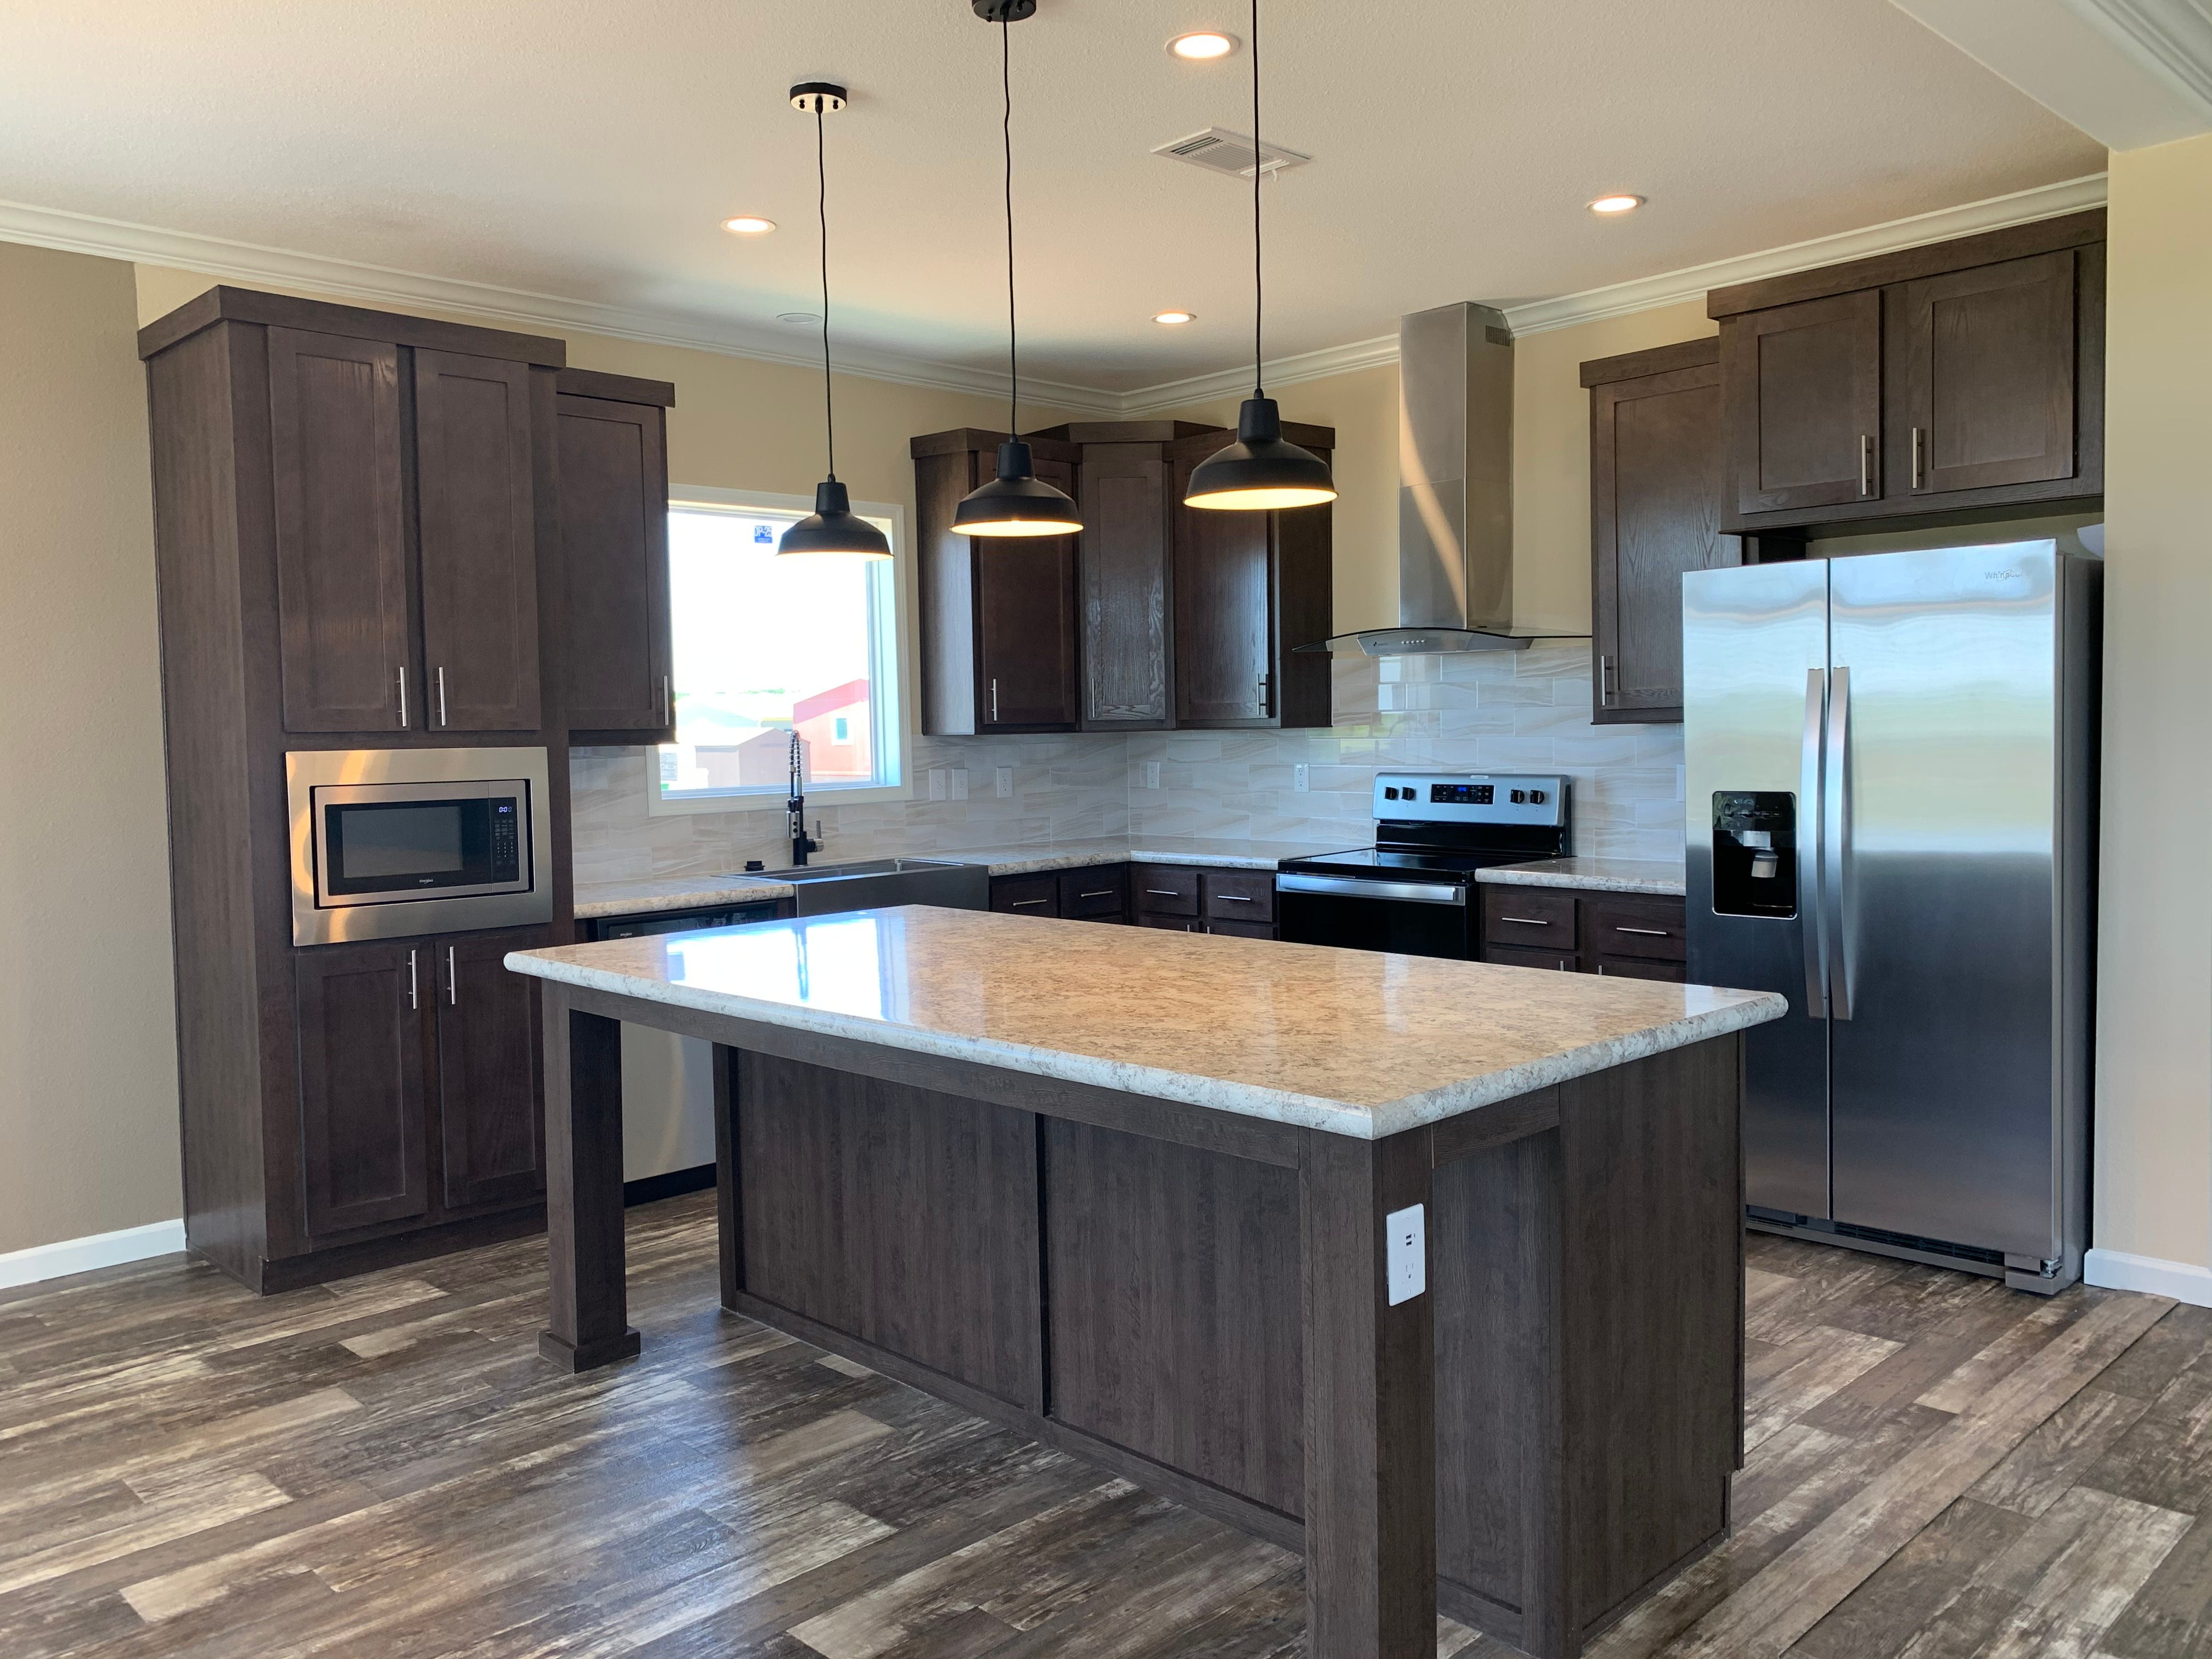 Kitchen featured in the Plan 250 By Harston Woods in Fort Worth, TX